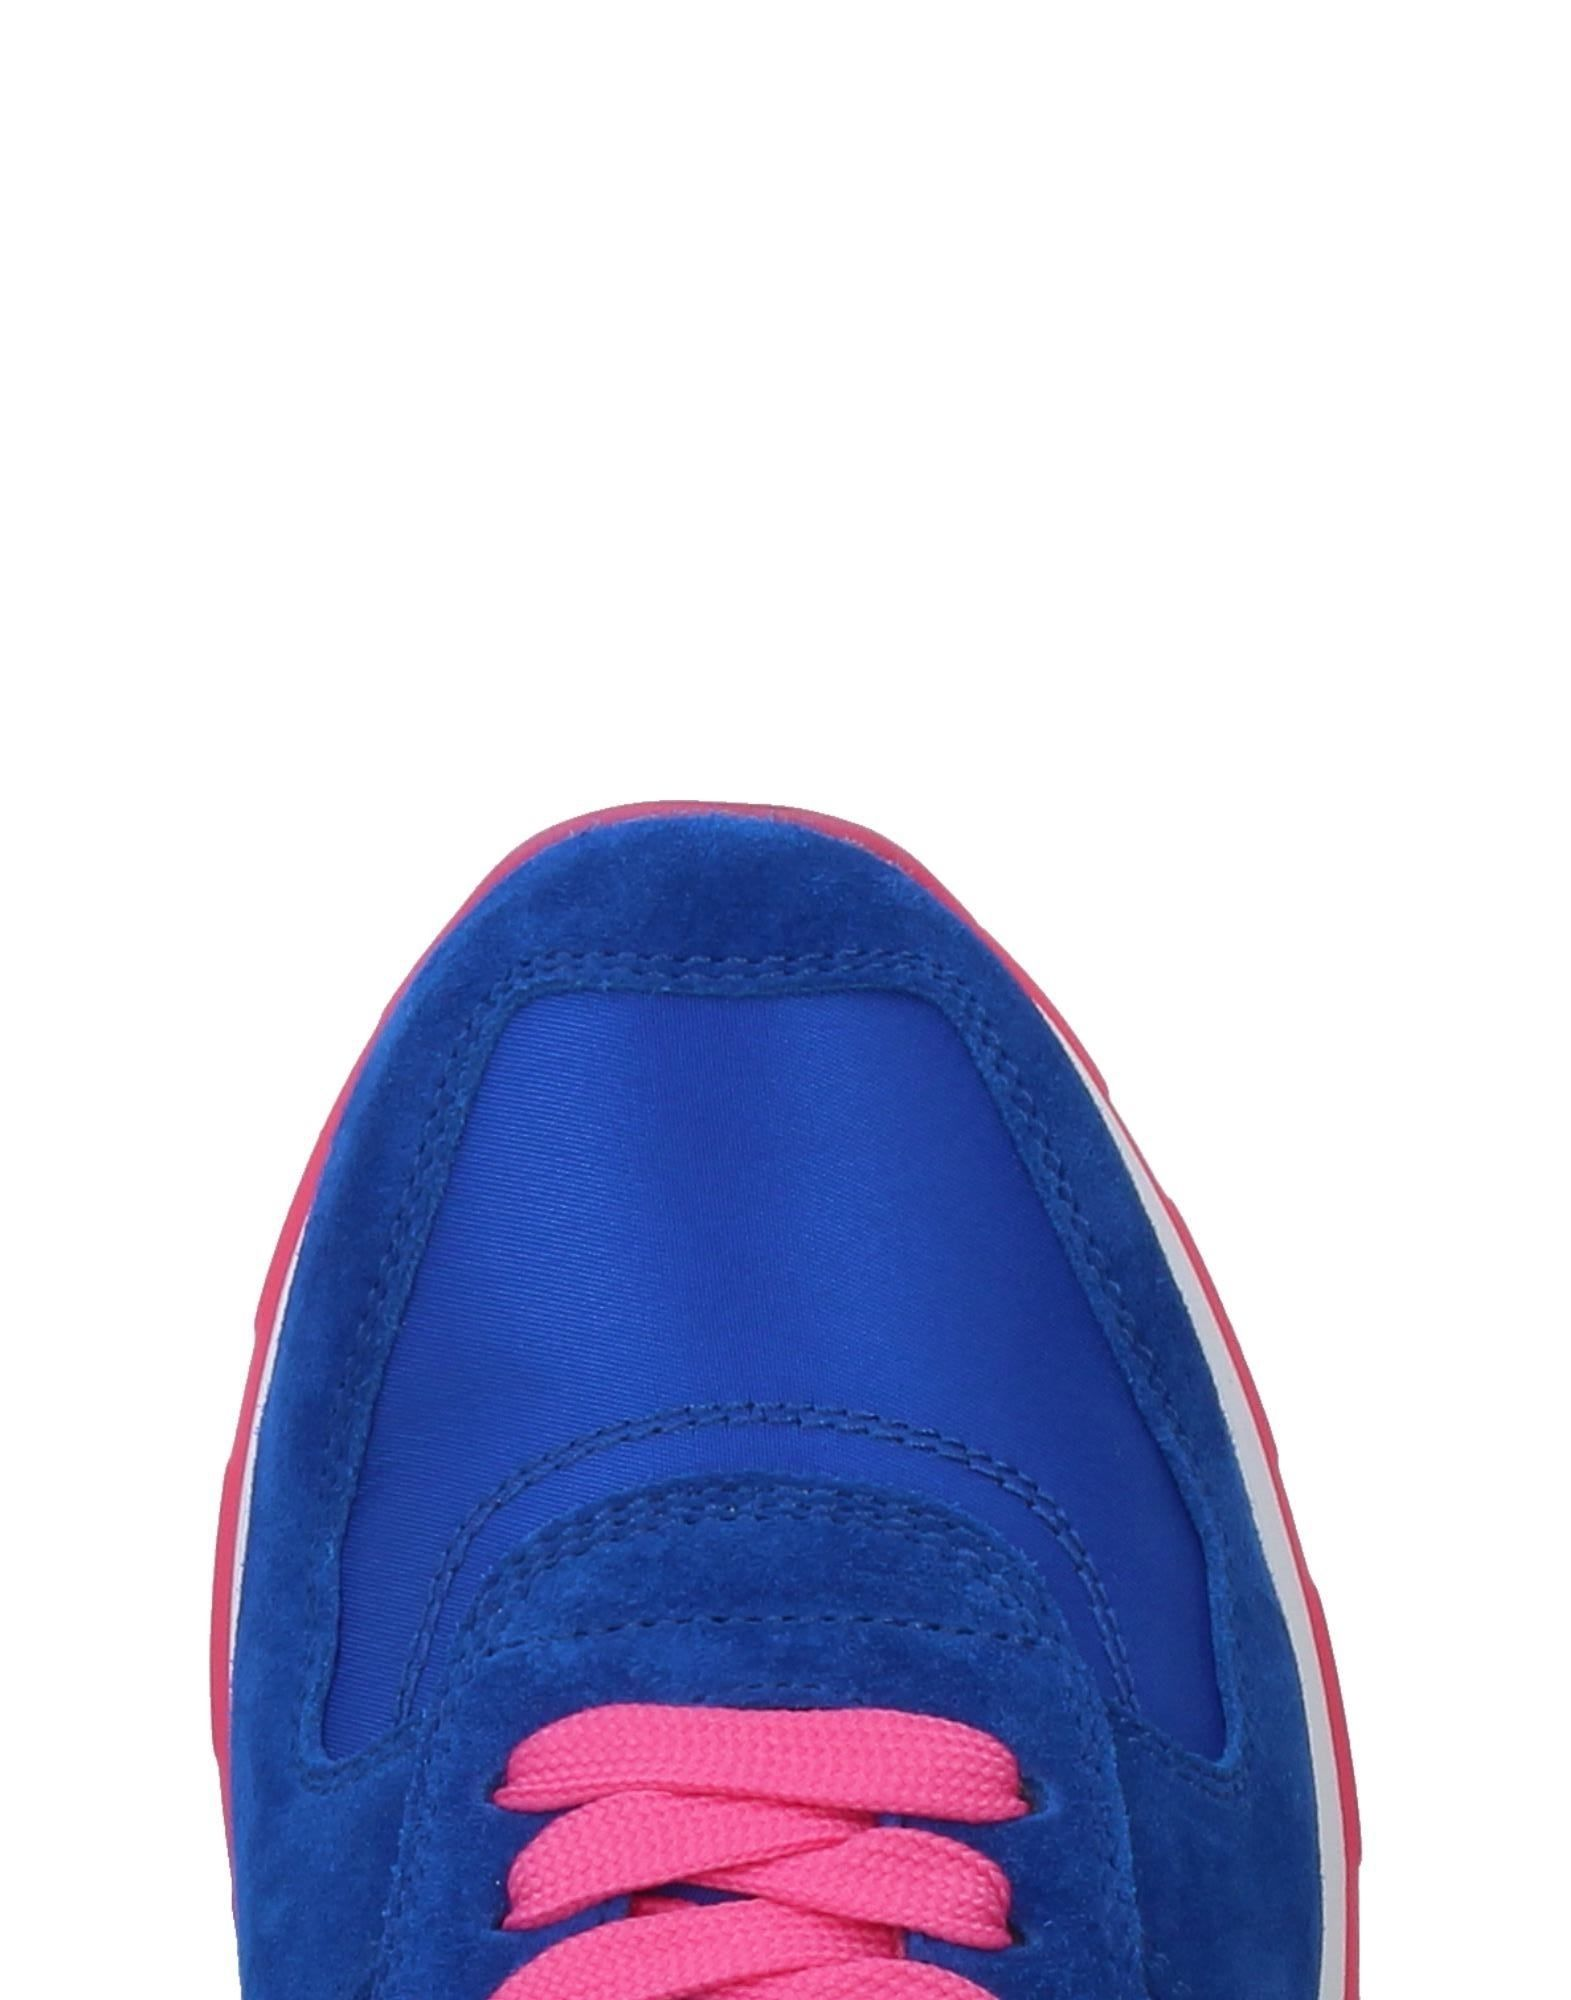 Gut um billige Sneakers Schuhe zu tragenAtlantic Stars Sneakers billige Damen  11363425CD c4c4f2